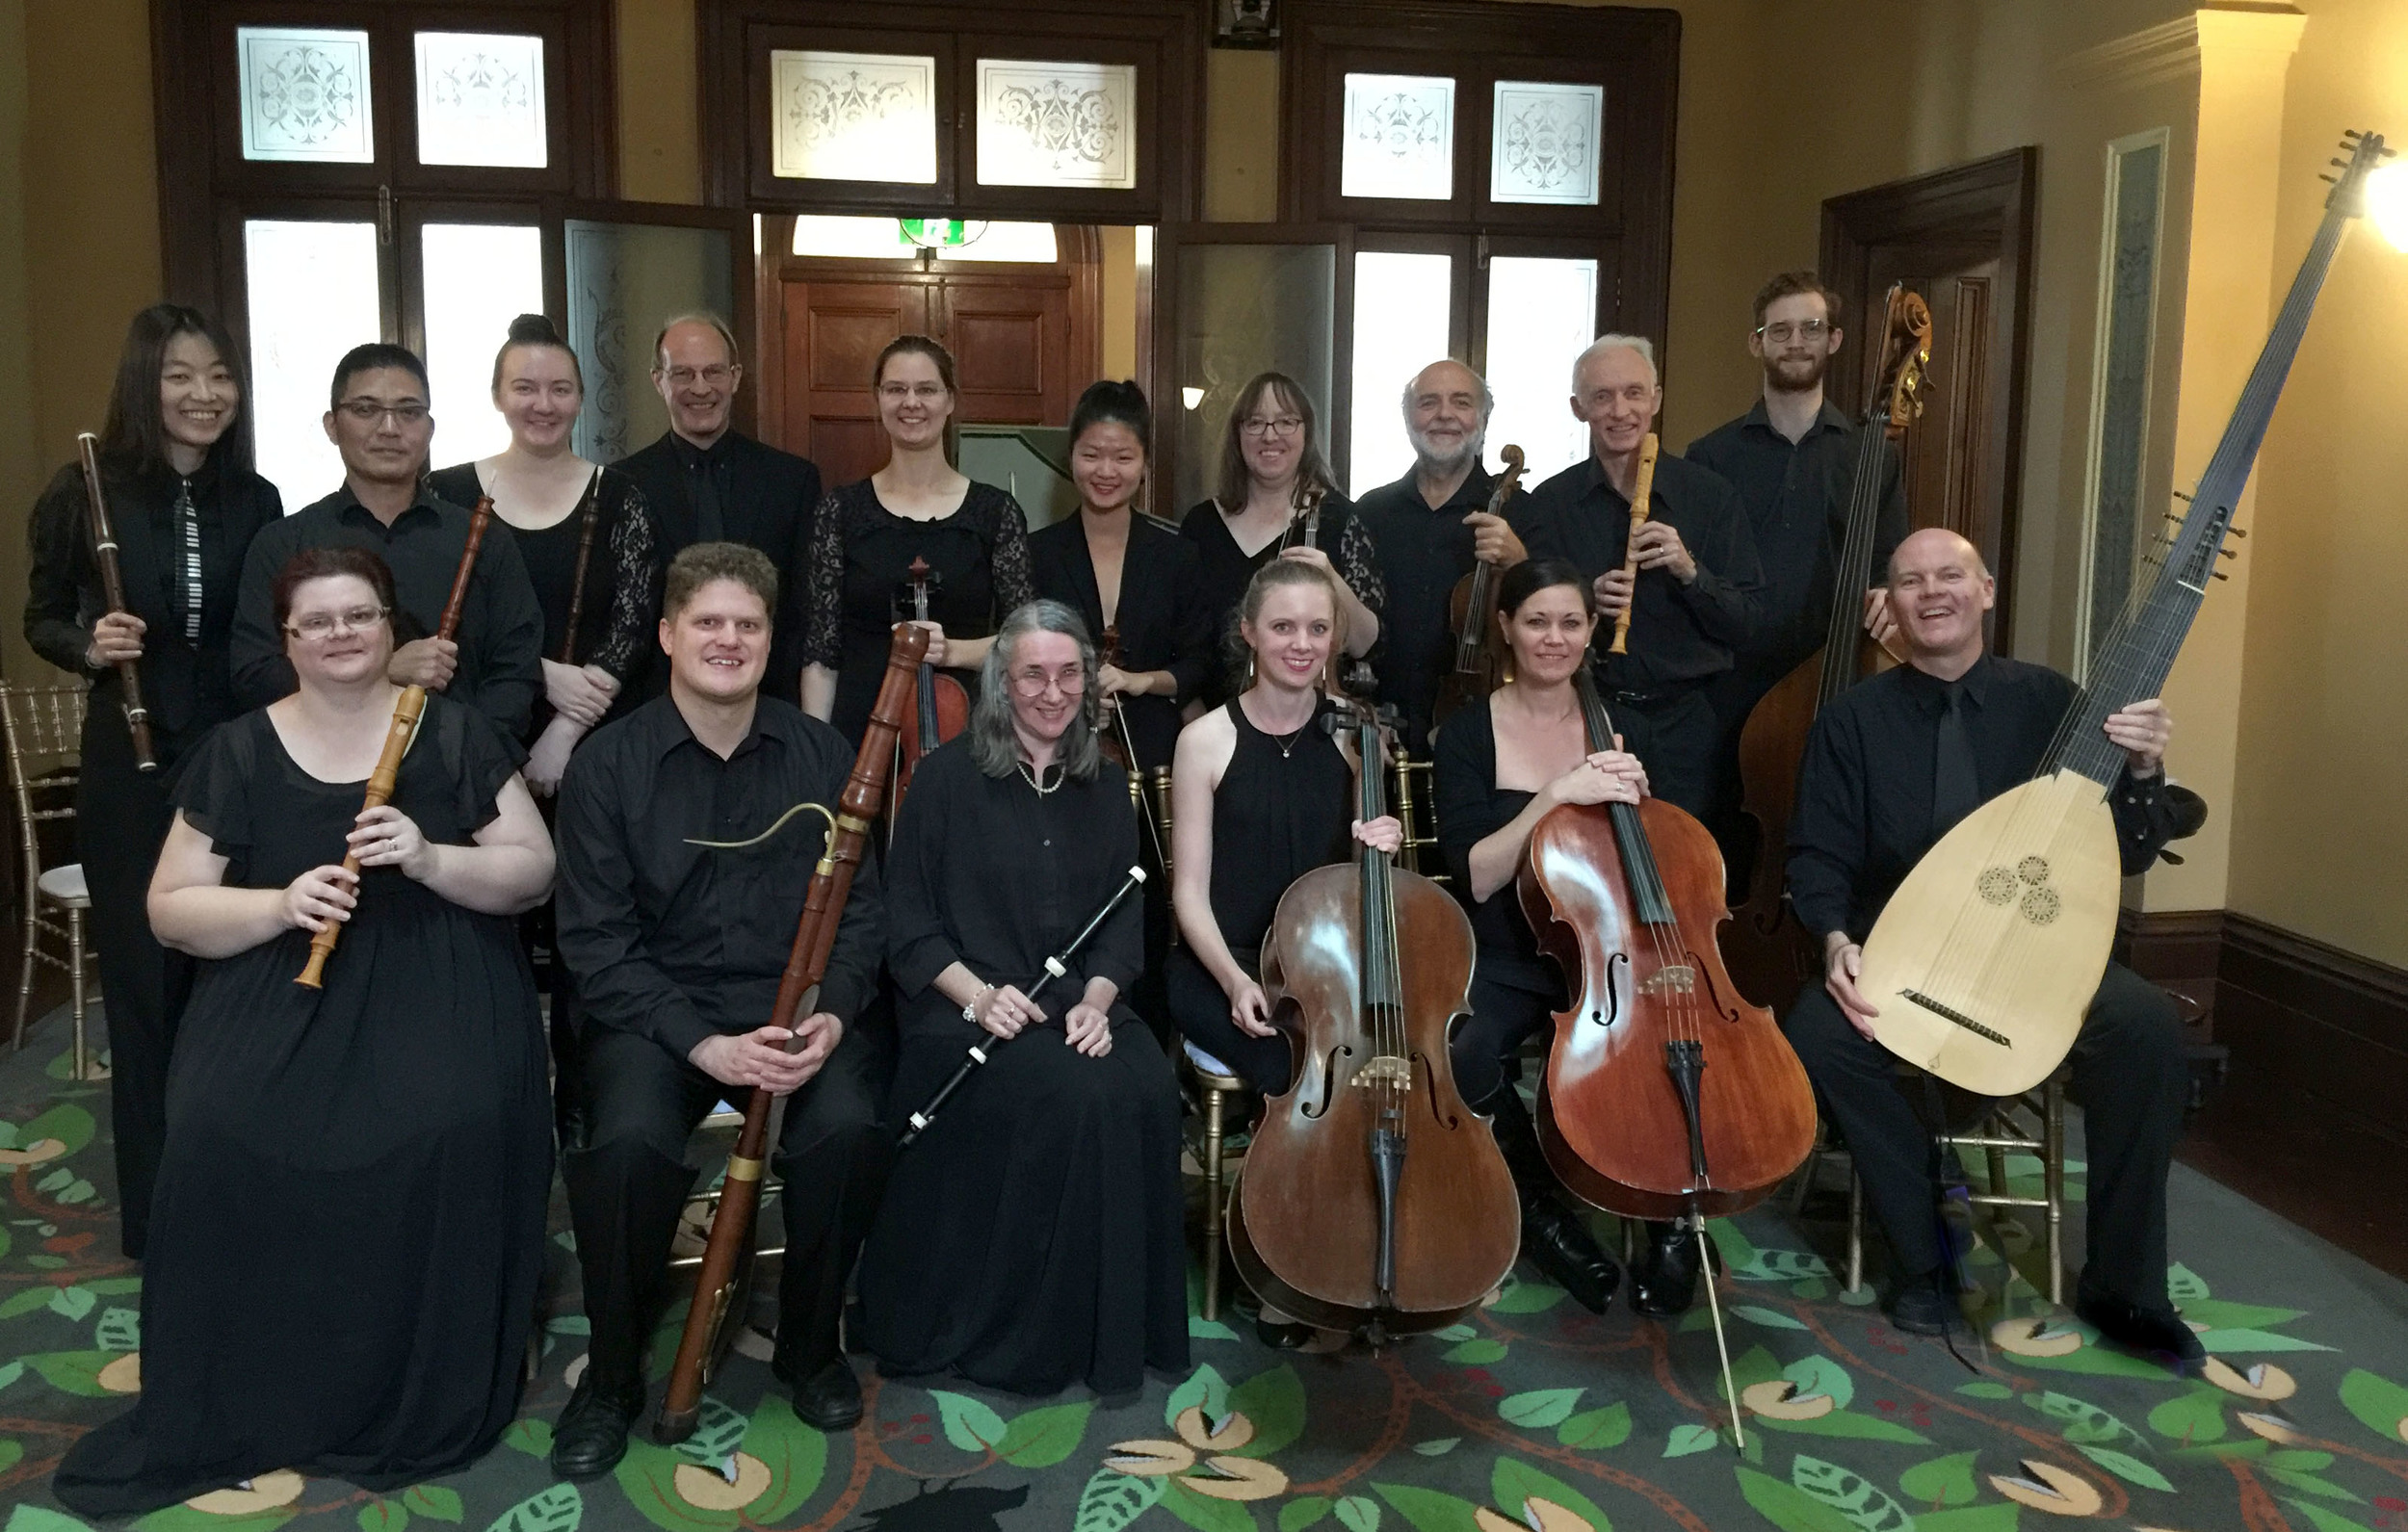 Brisbane_Baroque_Players_20160612_Old_Government_House_BNE.jpg